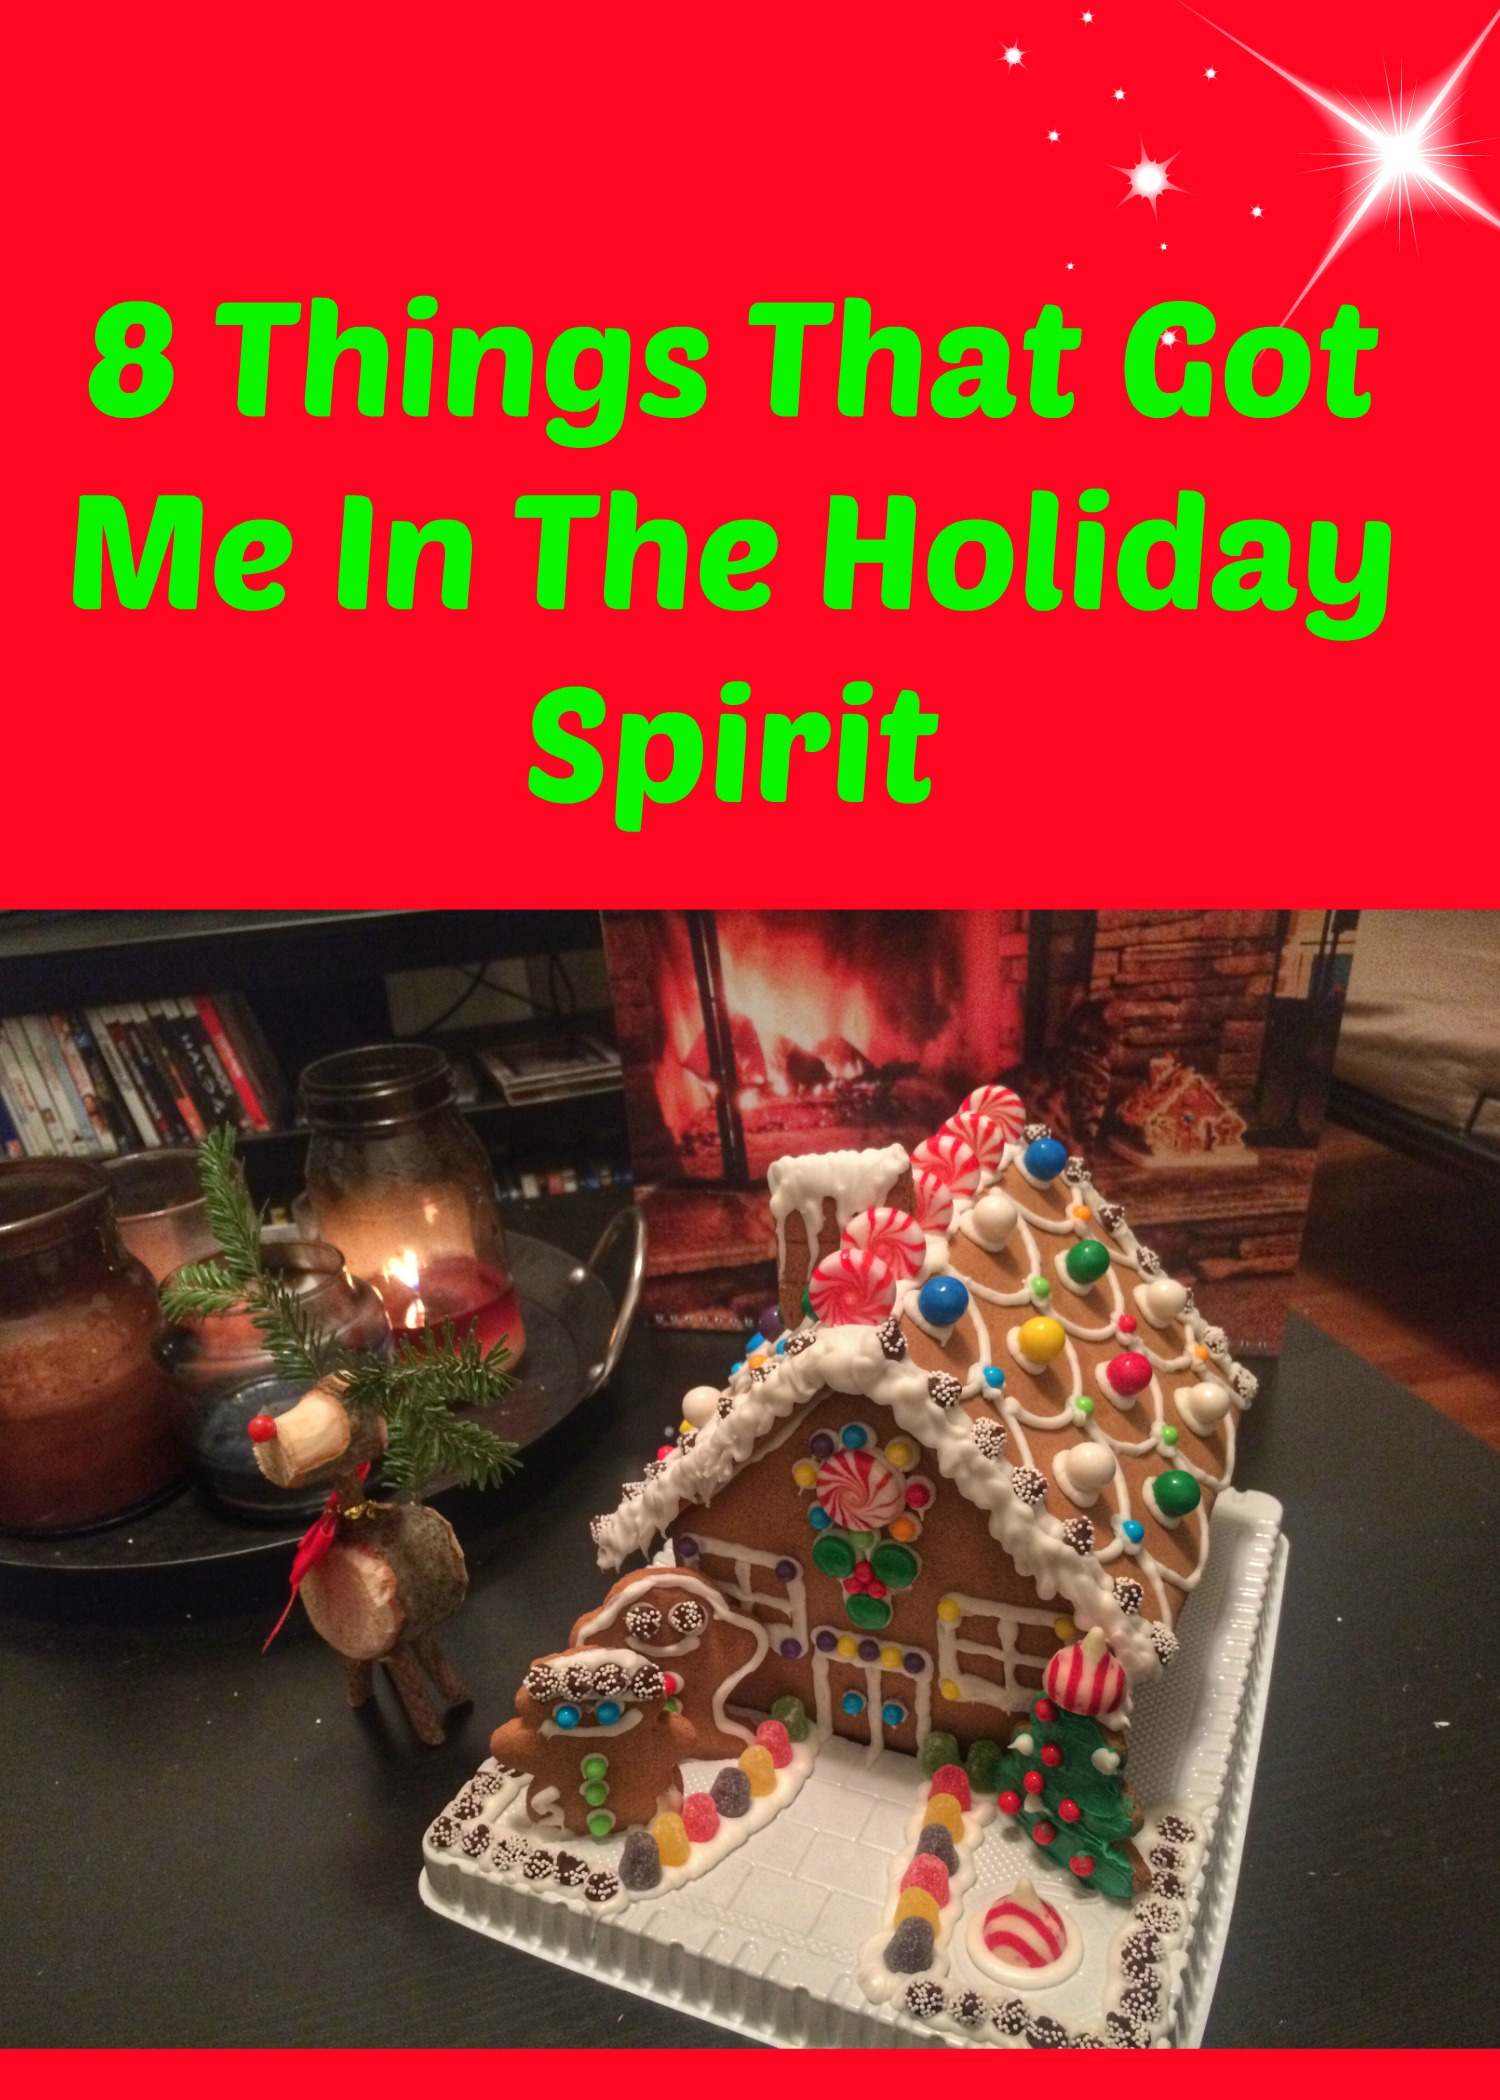 Things That Got Me In The Holiday Spirit